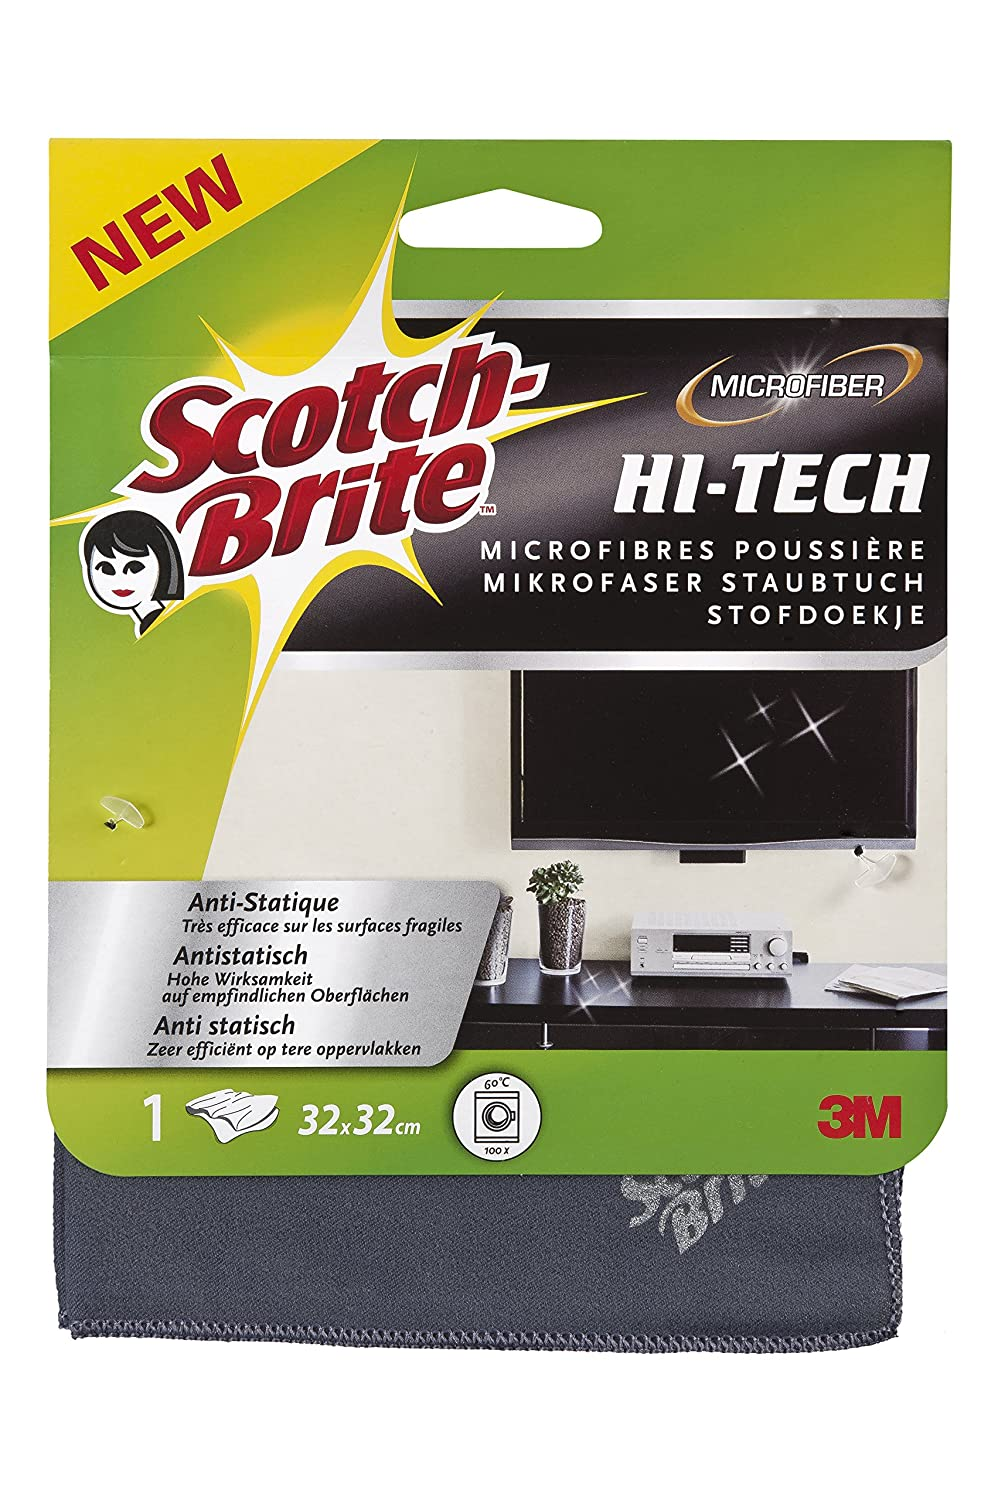 Scotch Brite Microfibra High-Tech Spolverino, 320 x 320 mm 3M Deutschland GmbH W950/12